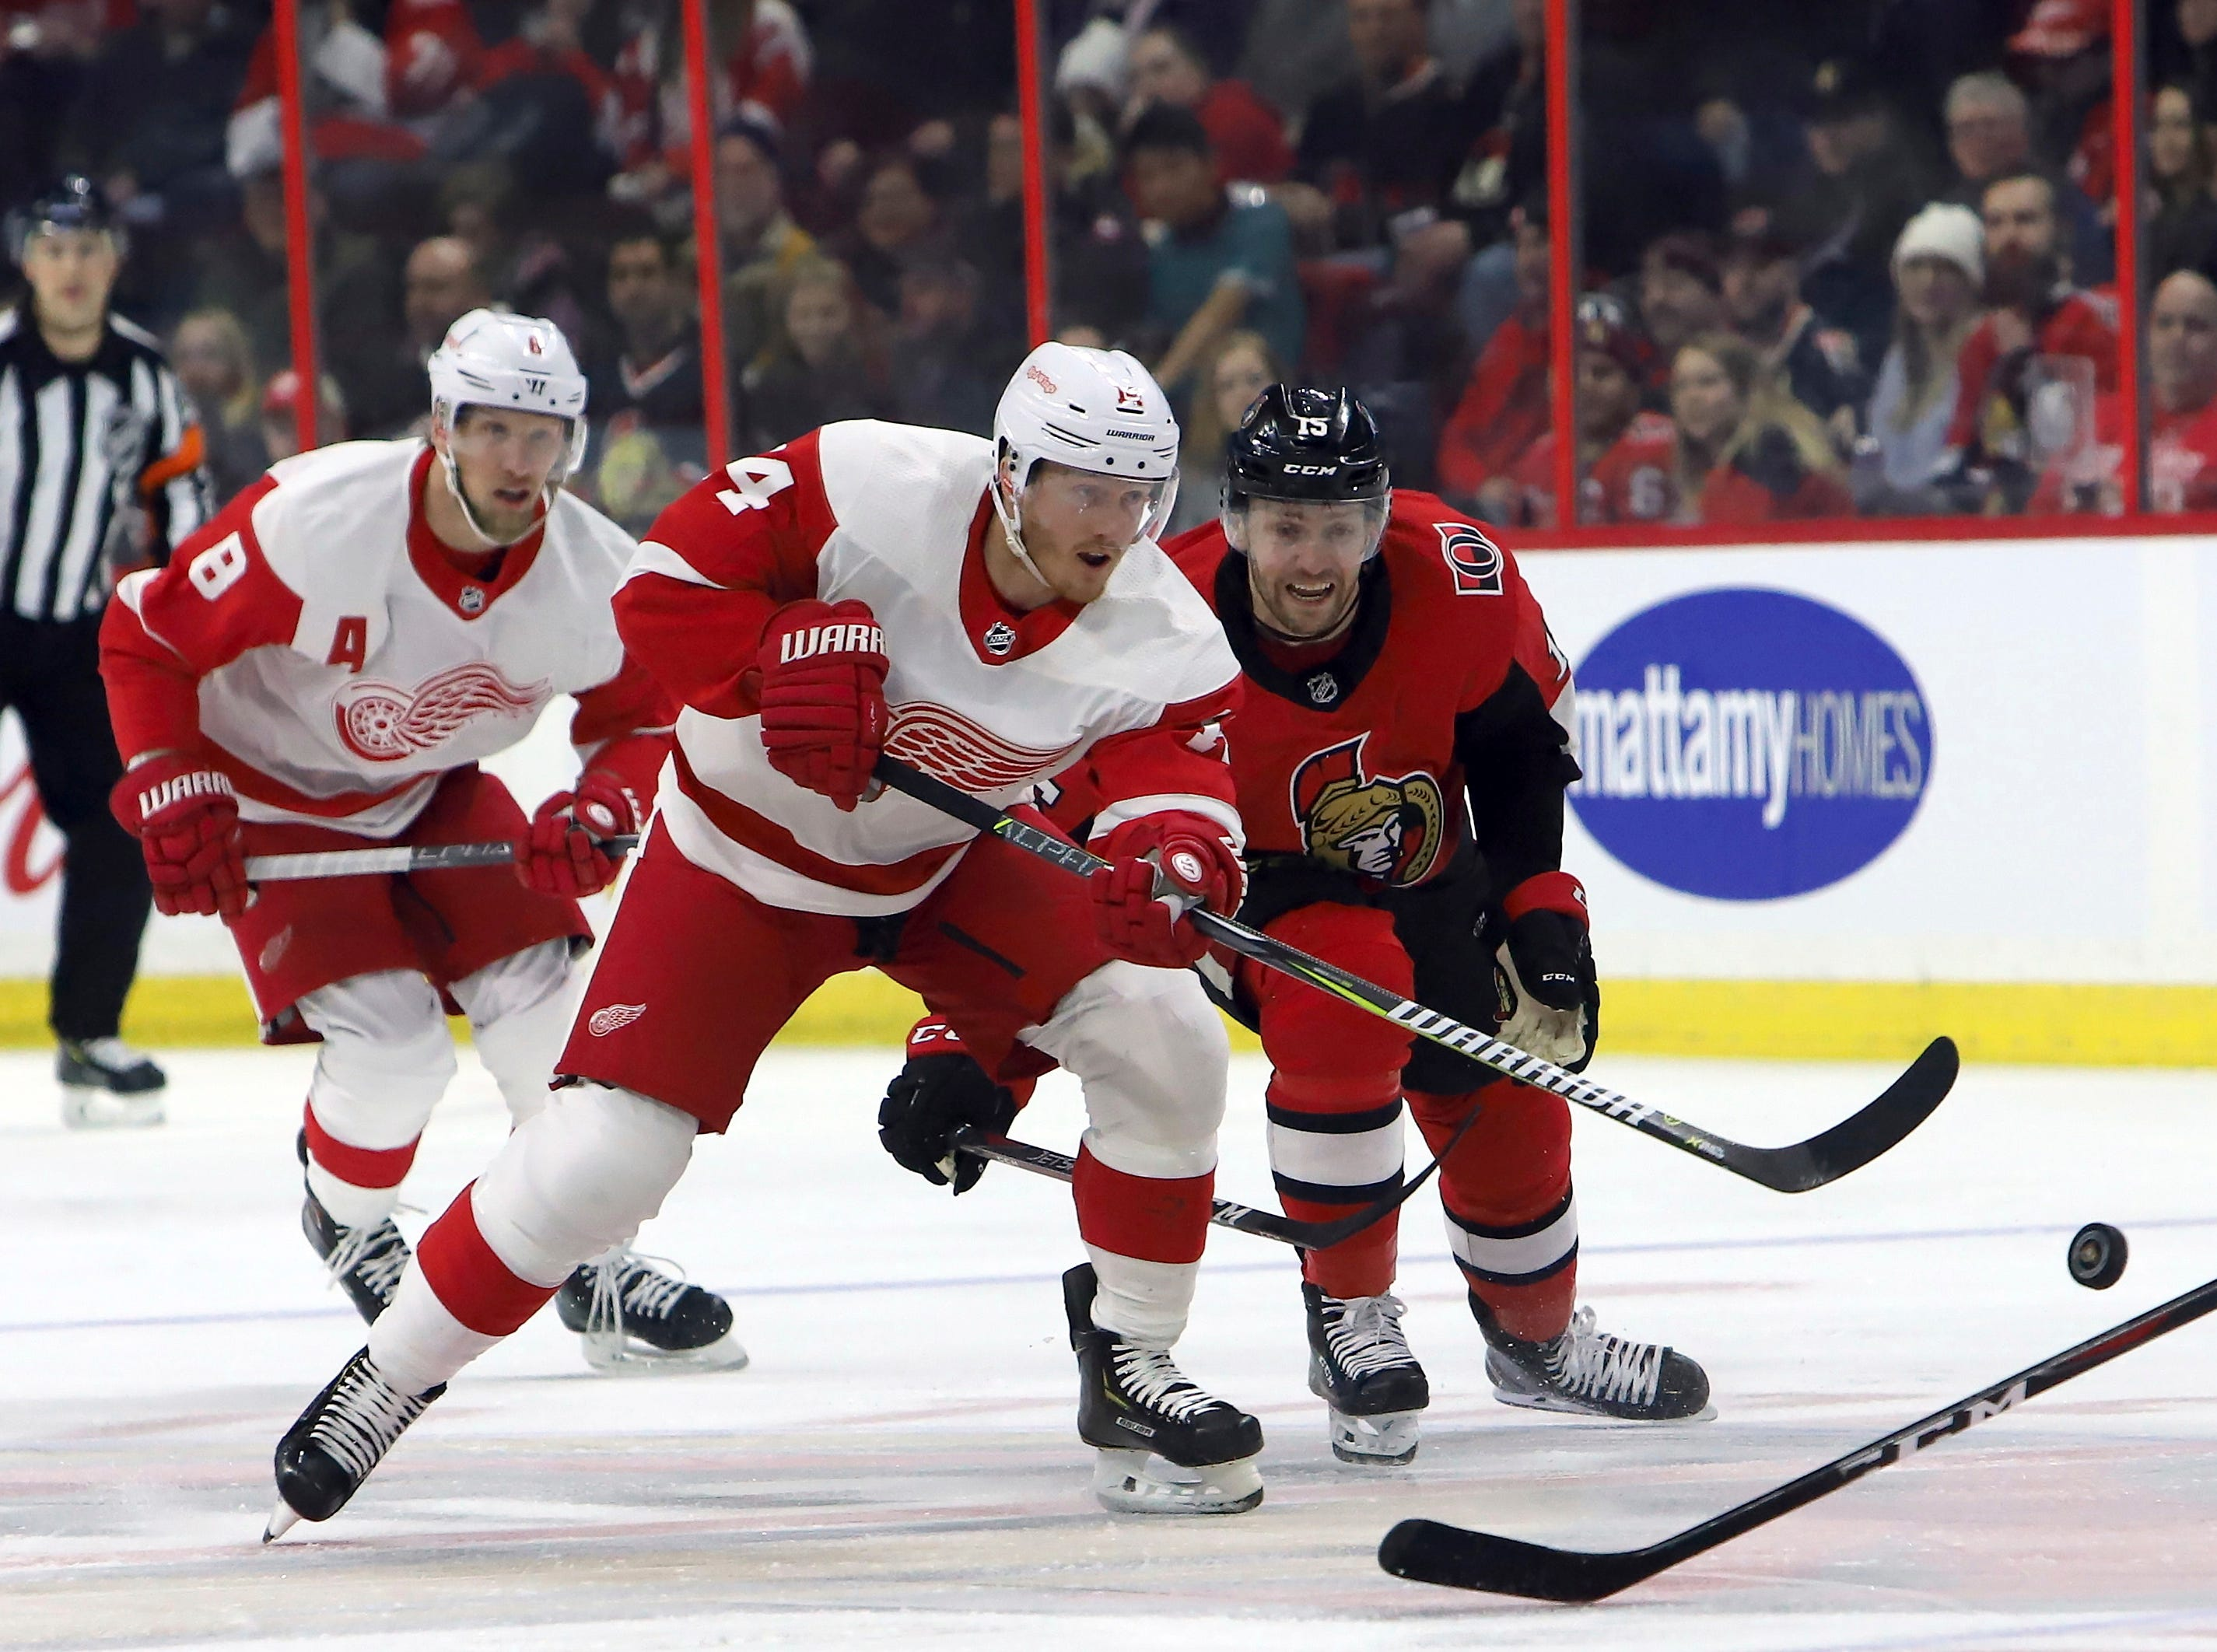 Ottawa Senators' Zack Smith (15) races for the puck against Detroit Red Wings' Gustav Nyquist (14) during first-period NHL hockey game action in Ottawa, Saturday, Feb. 2, 2019. (Fred Chartrand/The Canadian Press via AP)